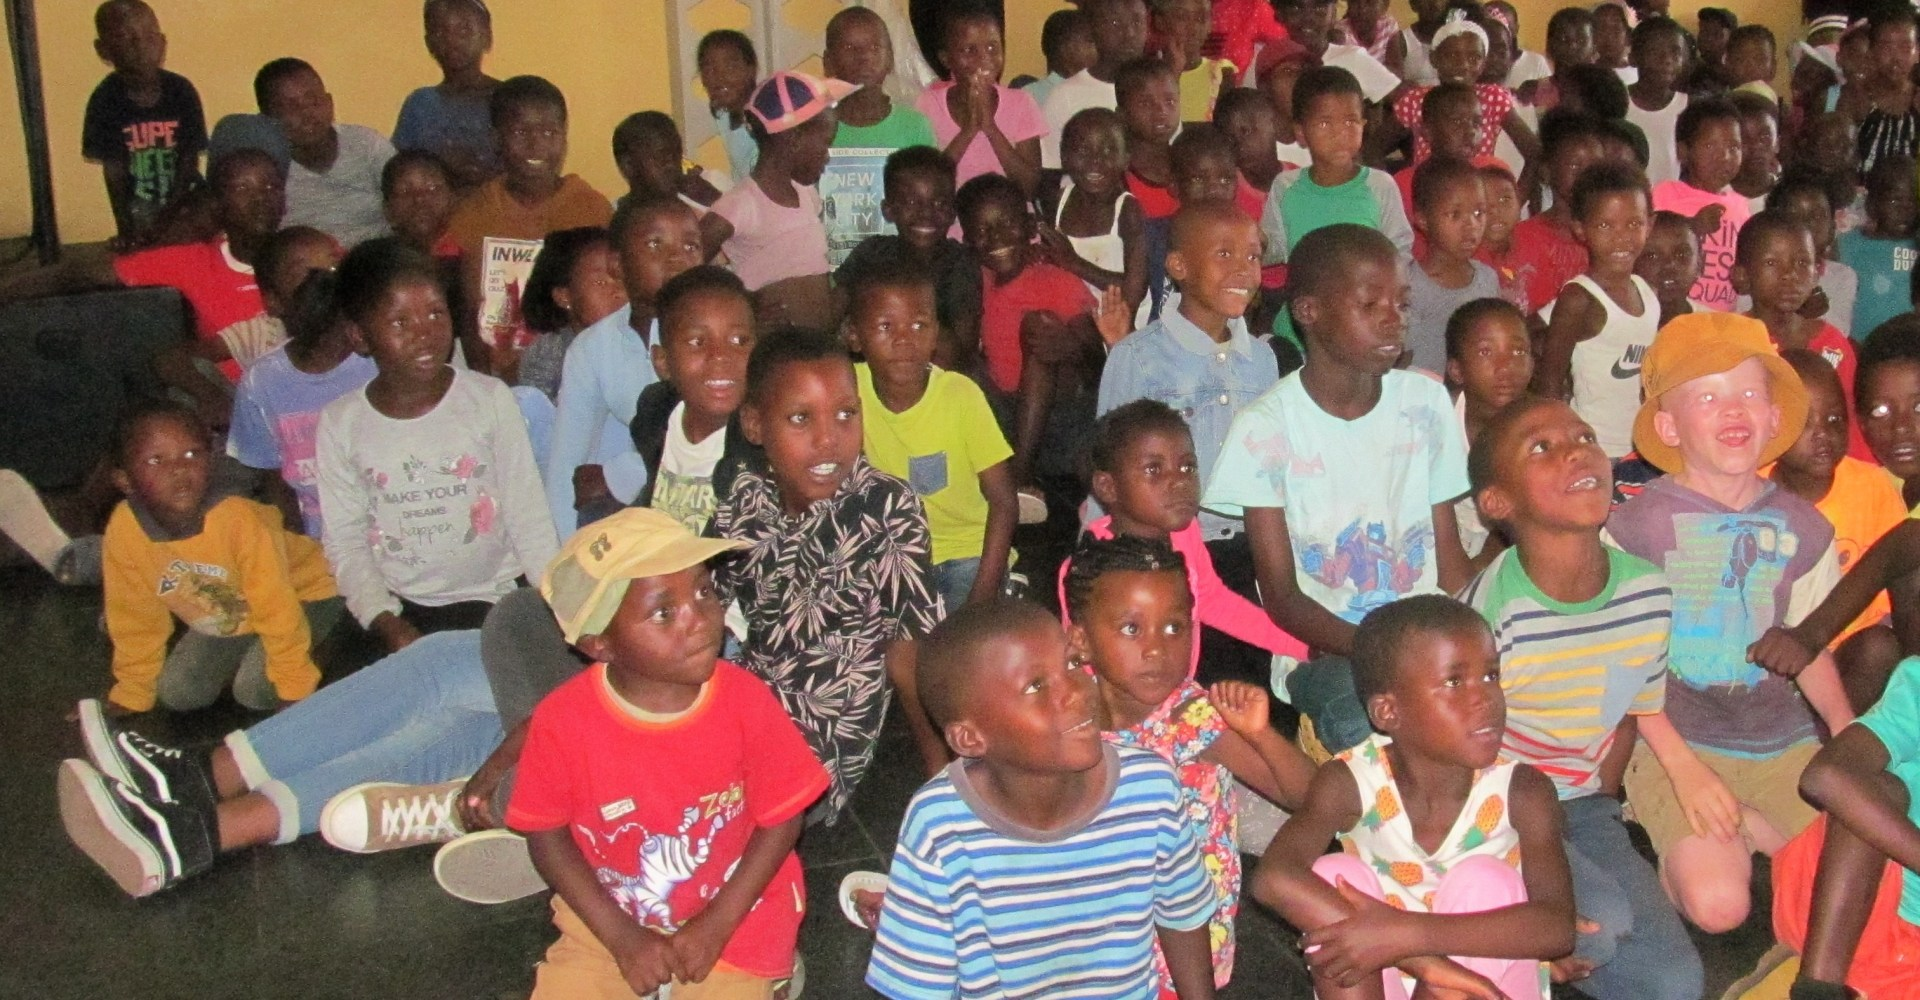 Big surprise for 300 children